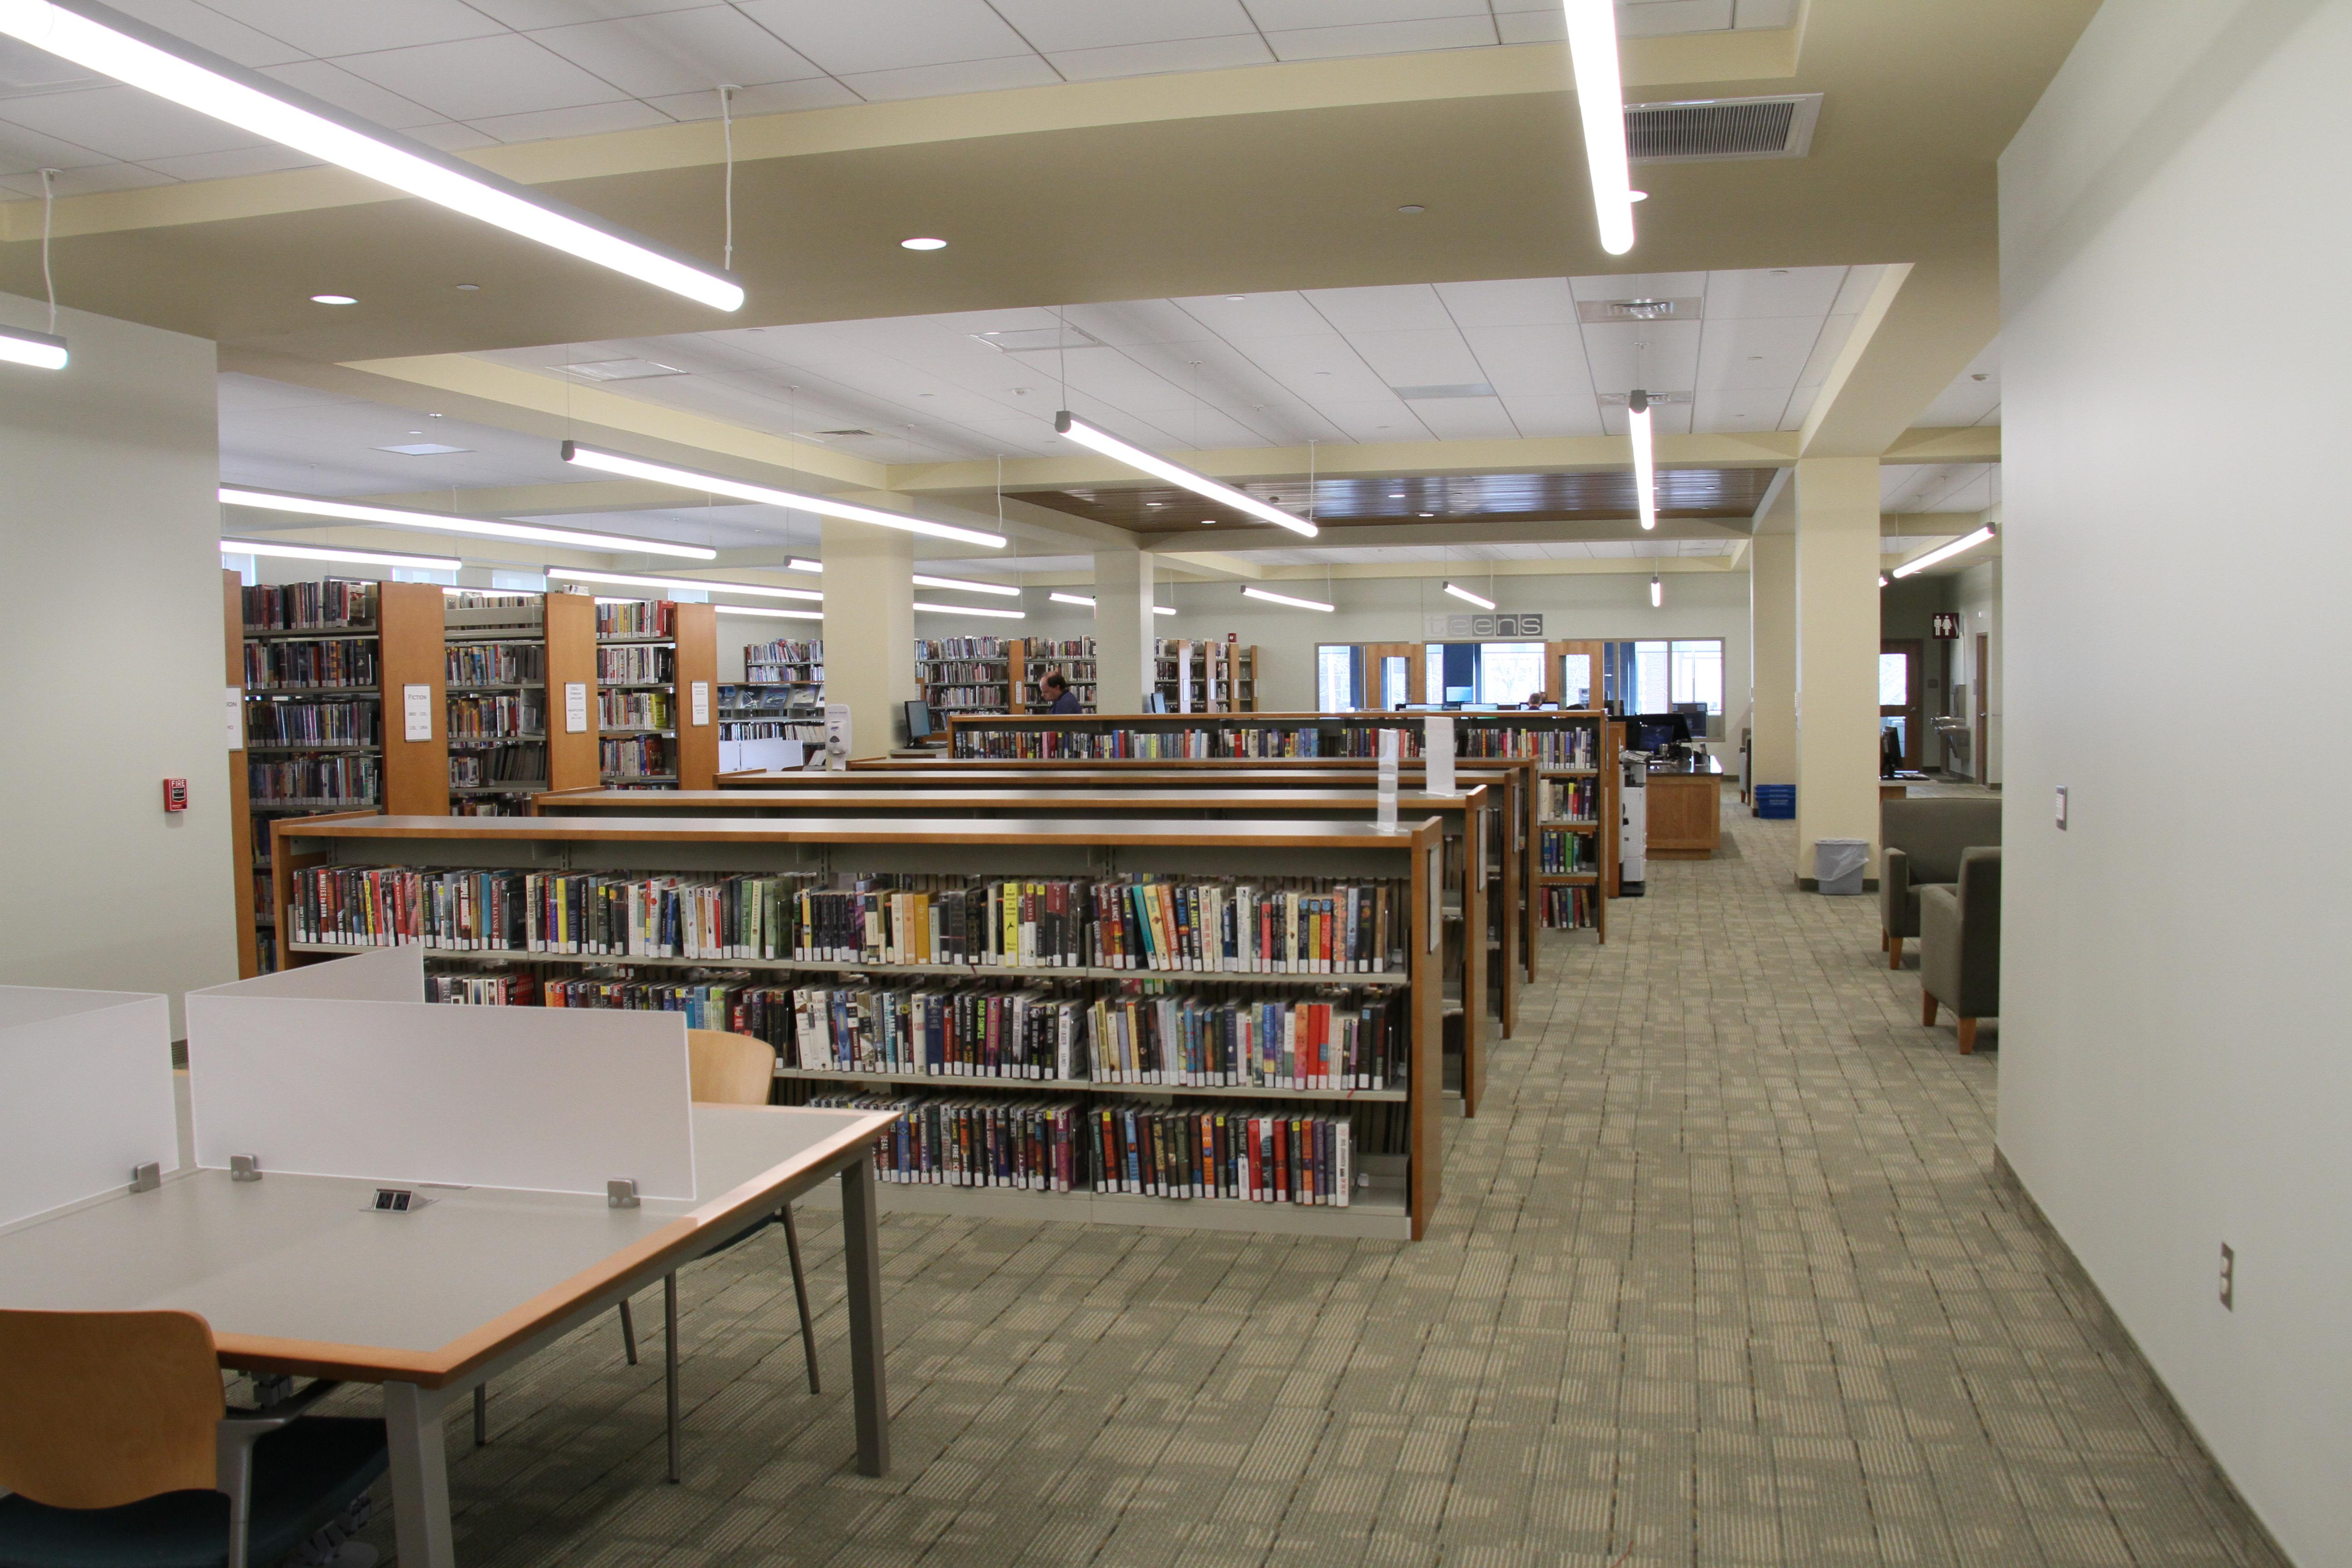 West Springfield Library Image 5